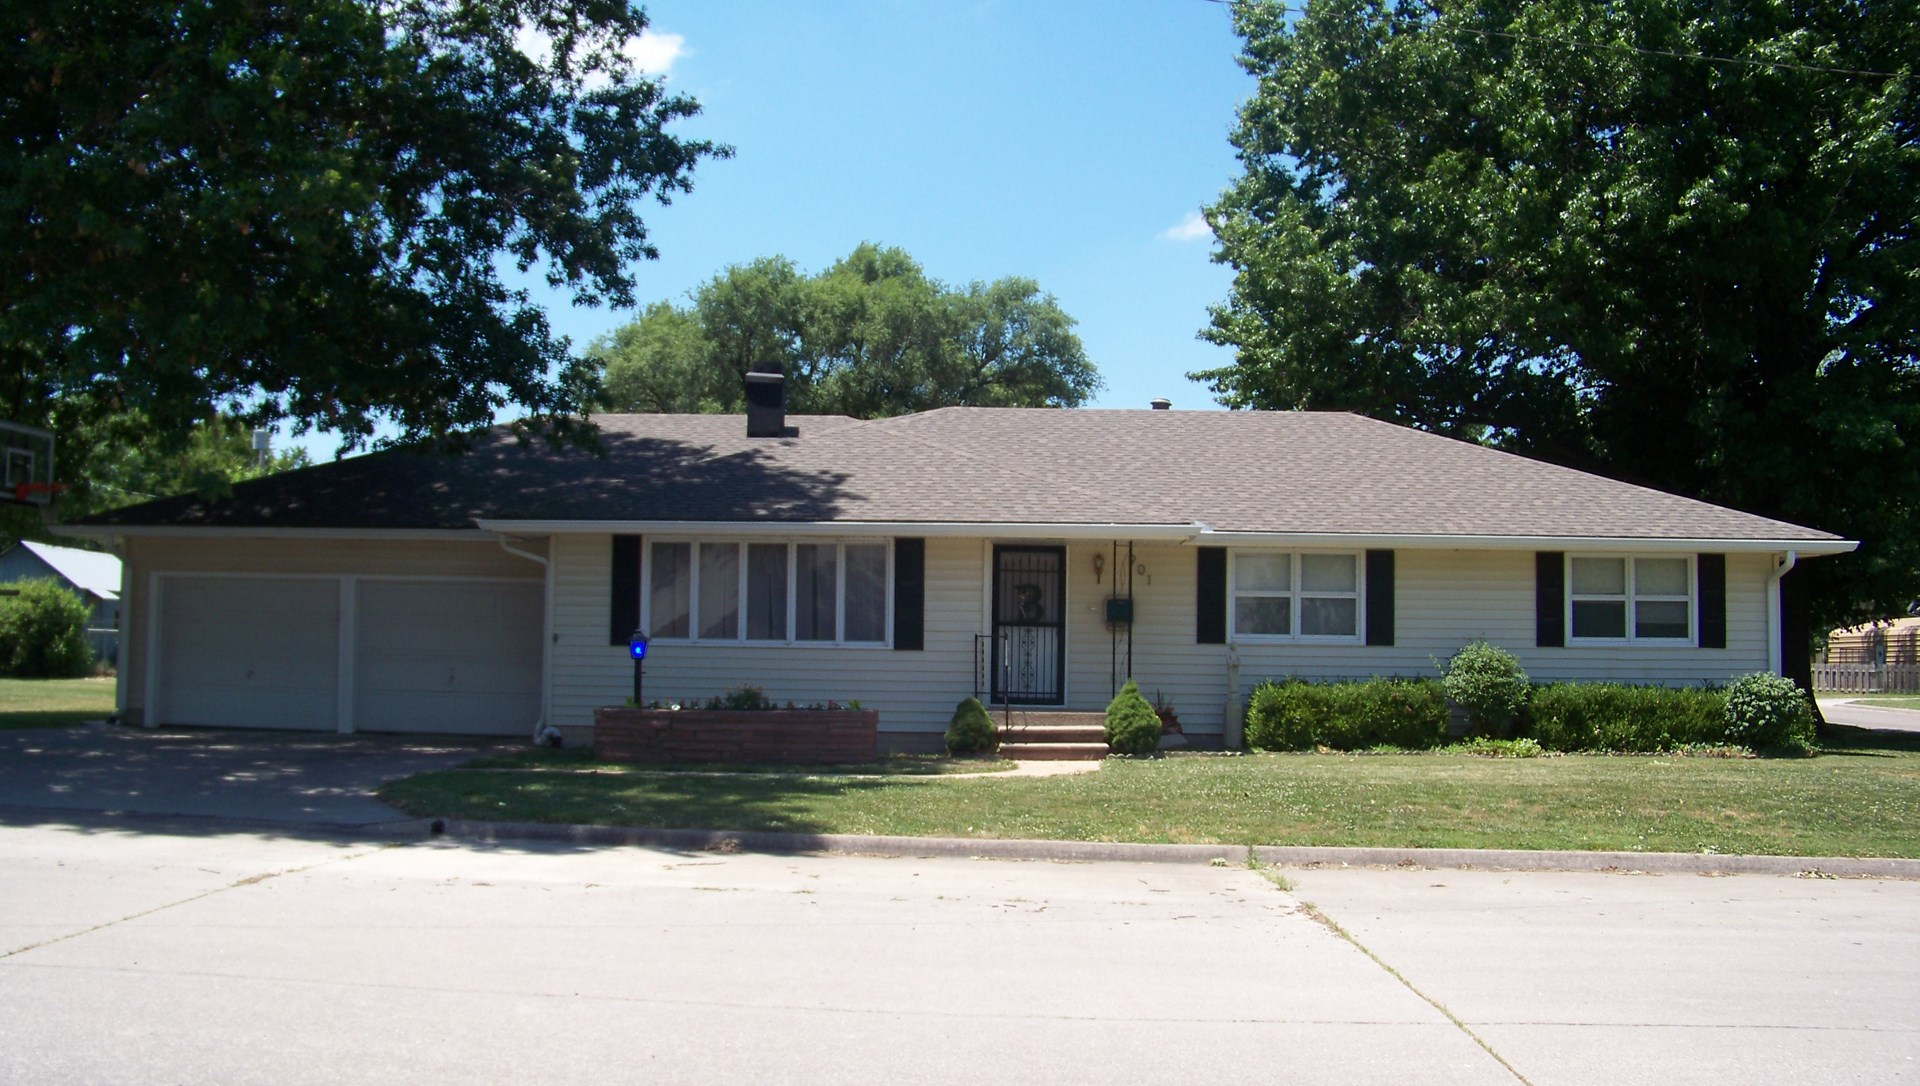 Home for Sale in Chnaute, KS